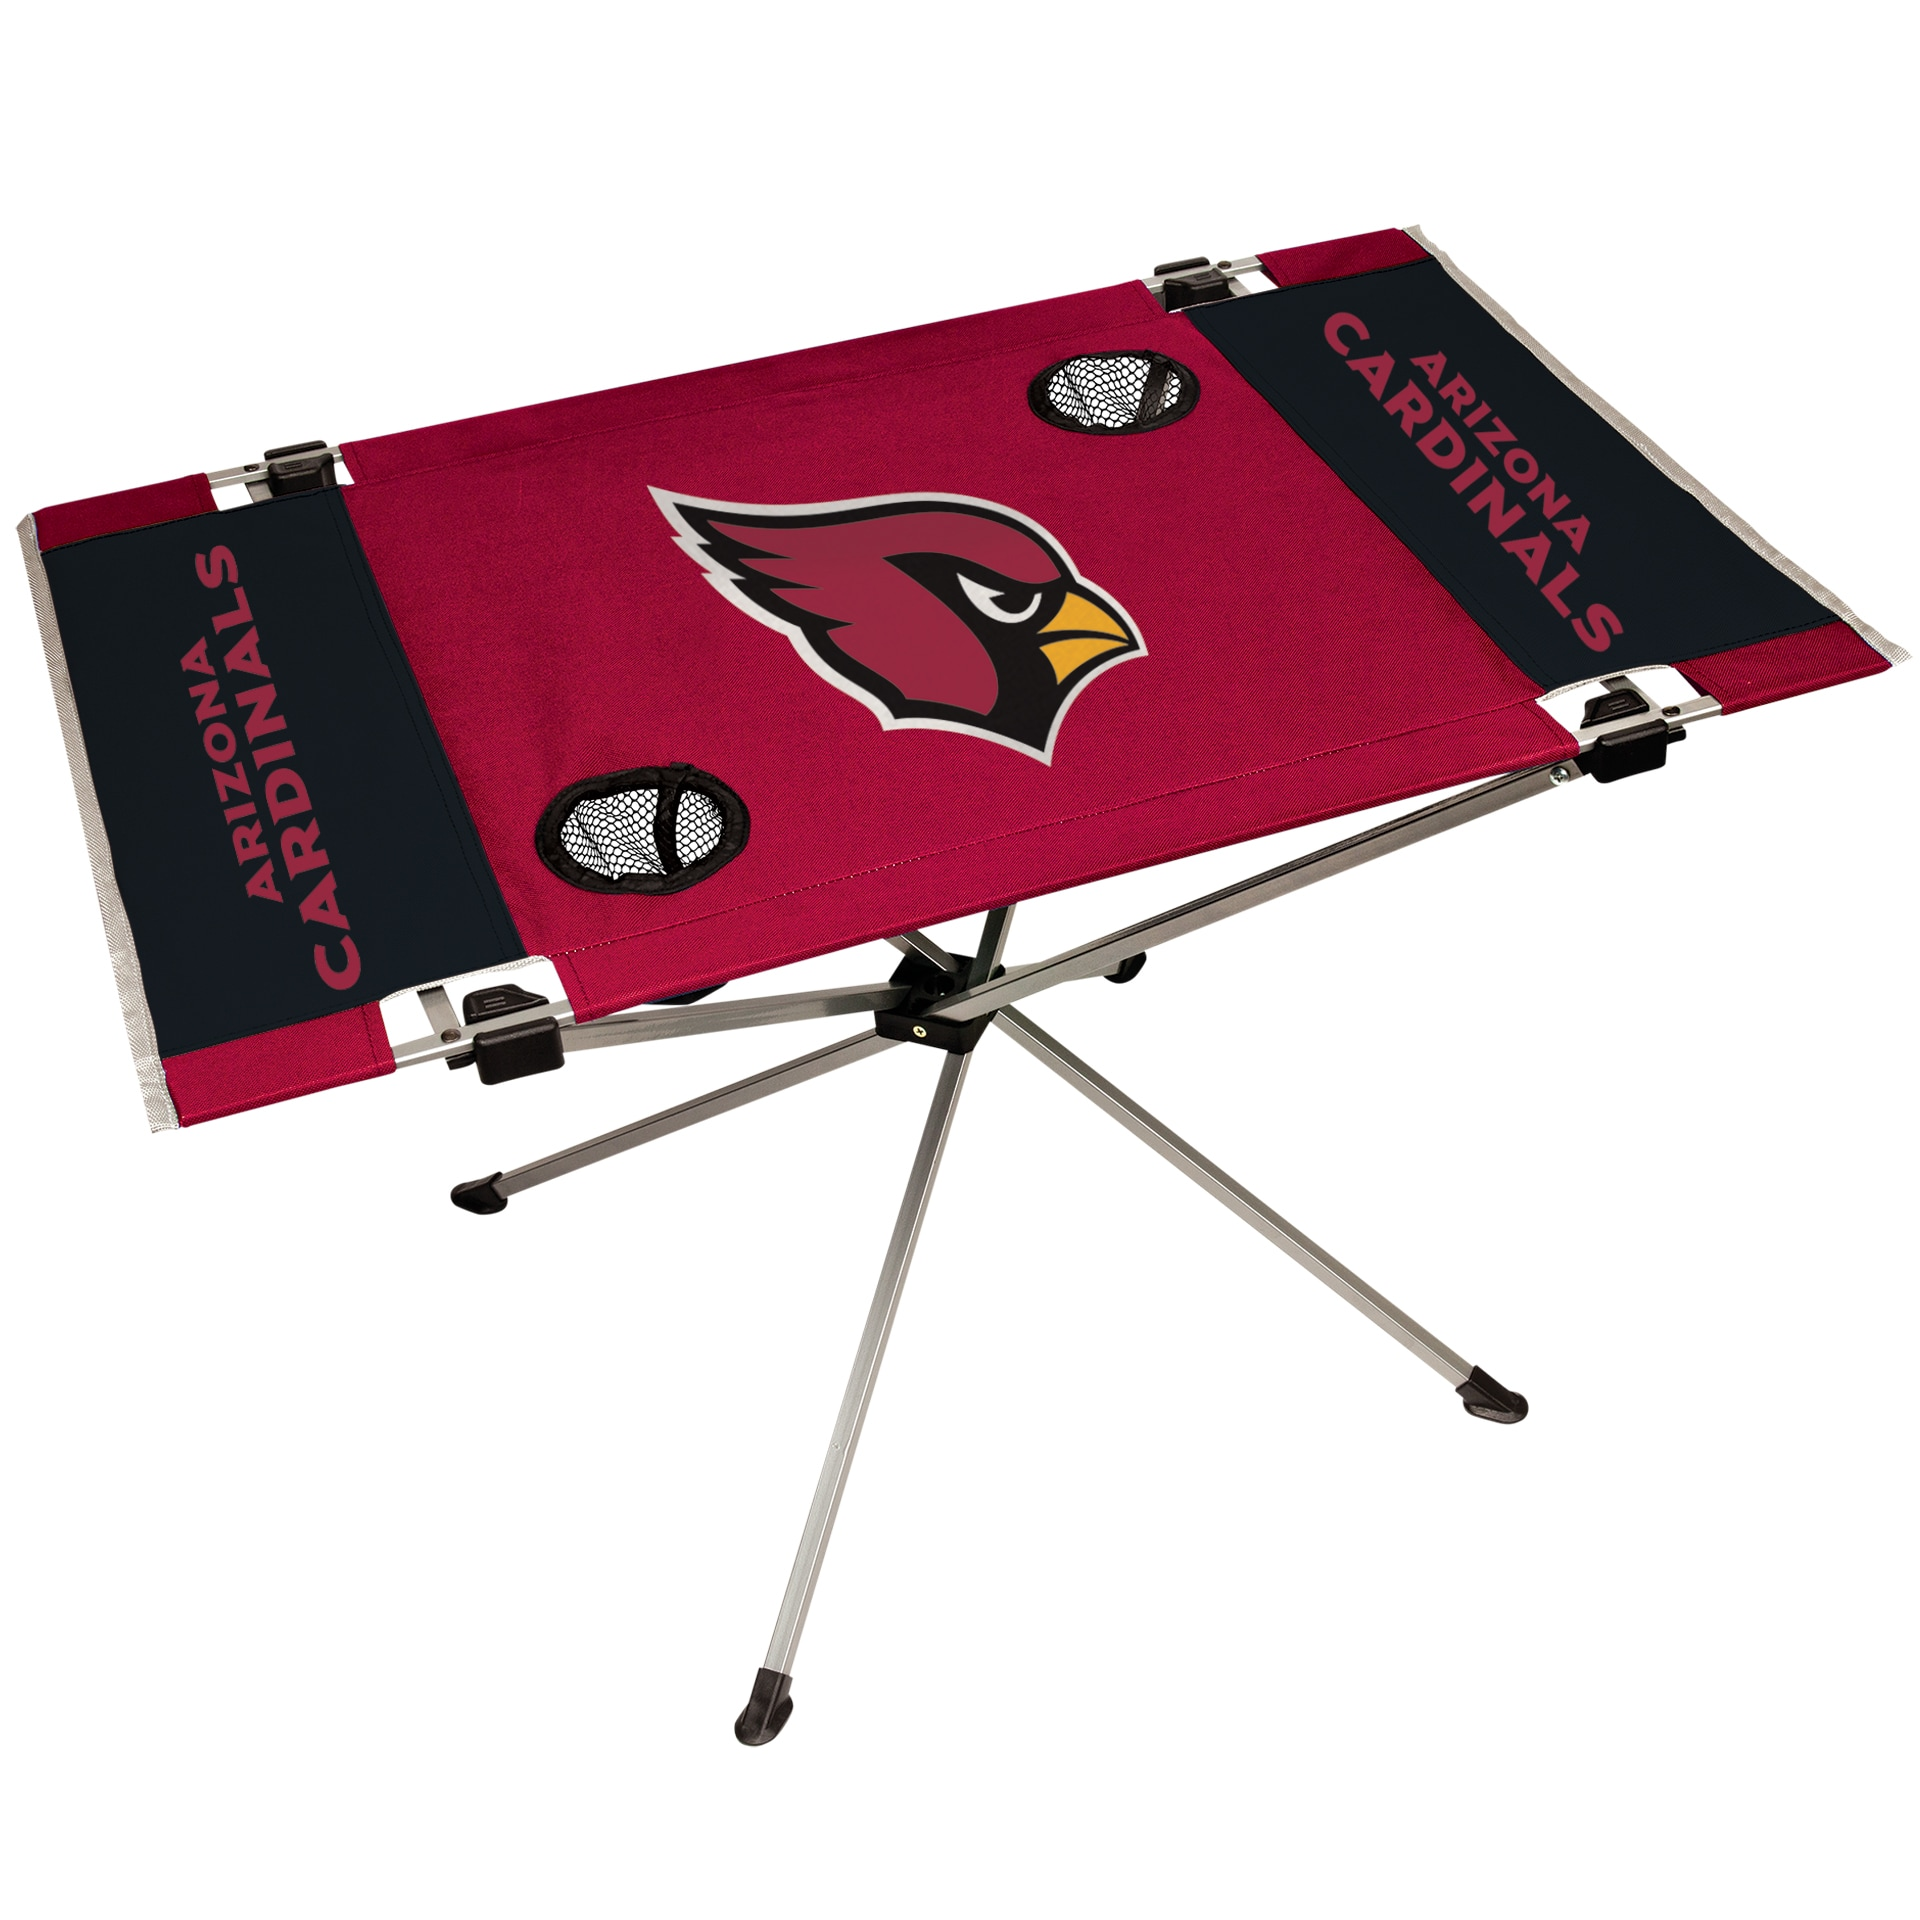 Arizona Cardinals End Zone Table